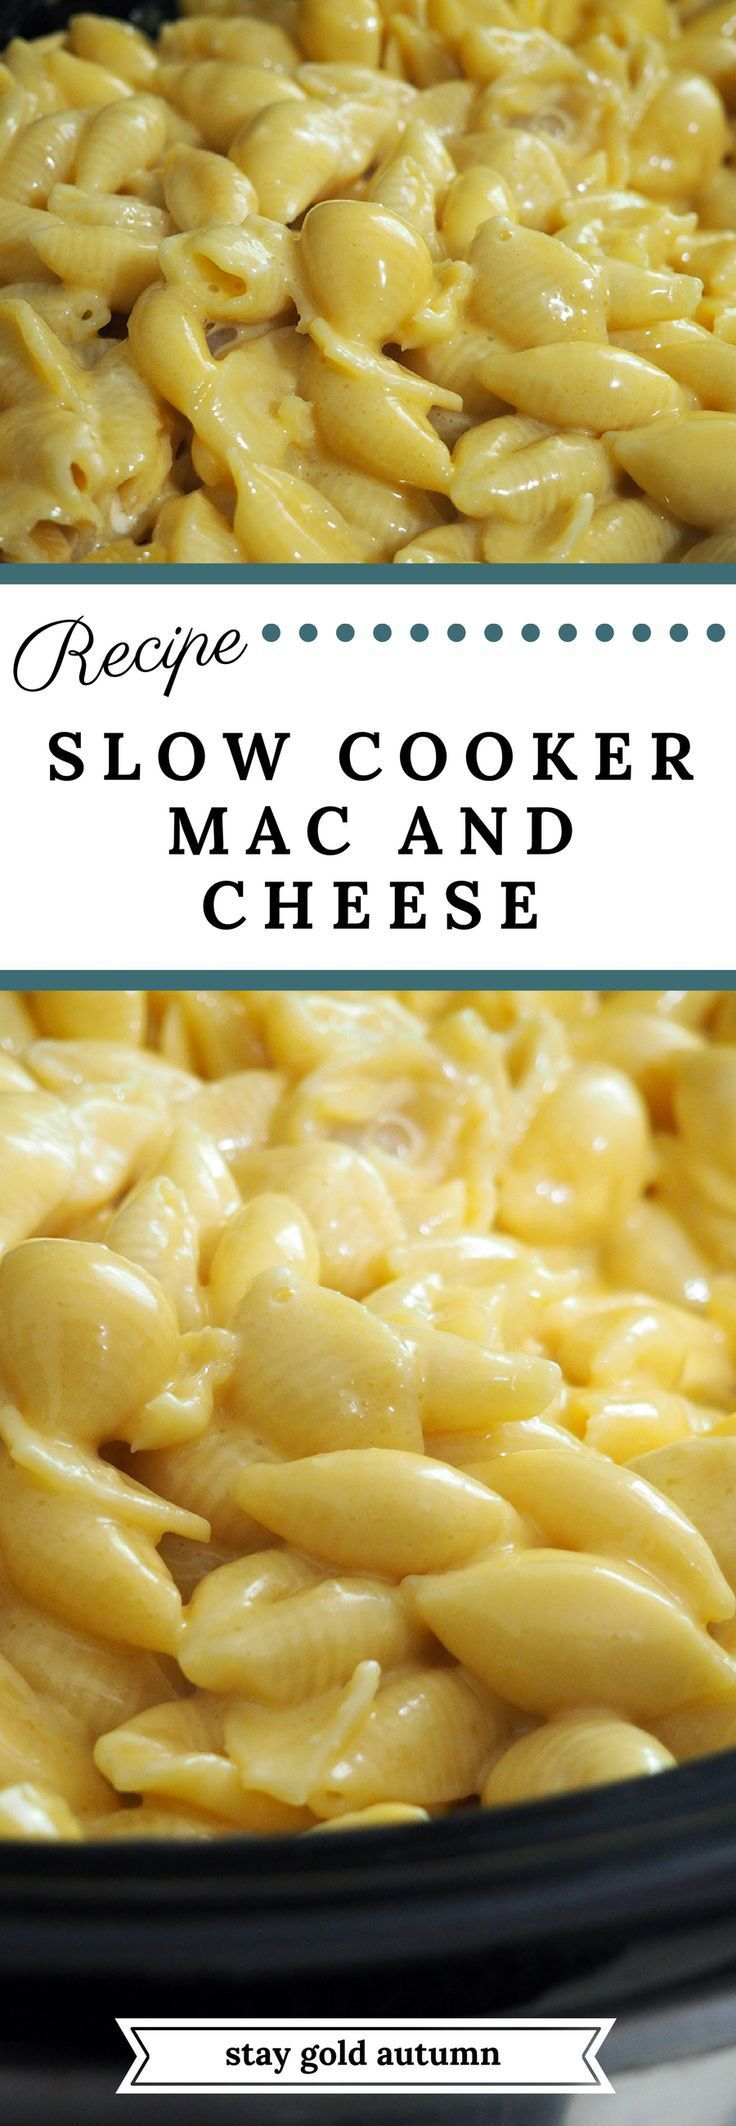 This slow cooker mac and cheese recipe is mouth watering and so easy to make! If you have two hours to spare, then this recipe is already finished! | via Stay gold Autumn